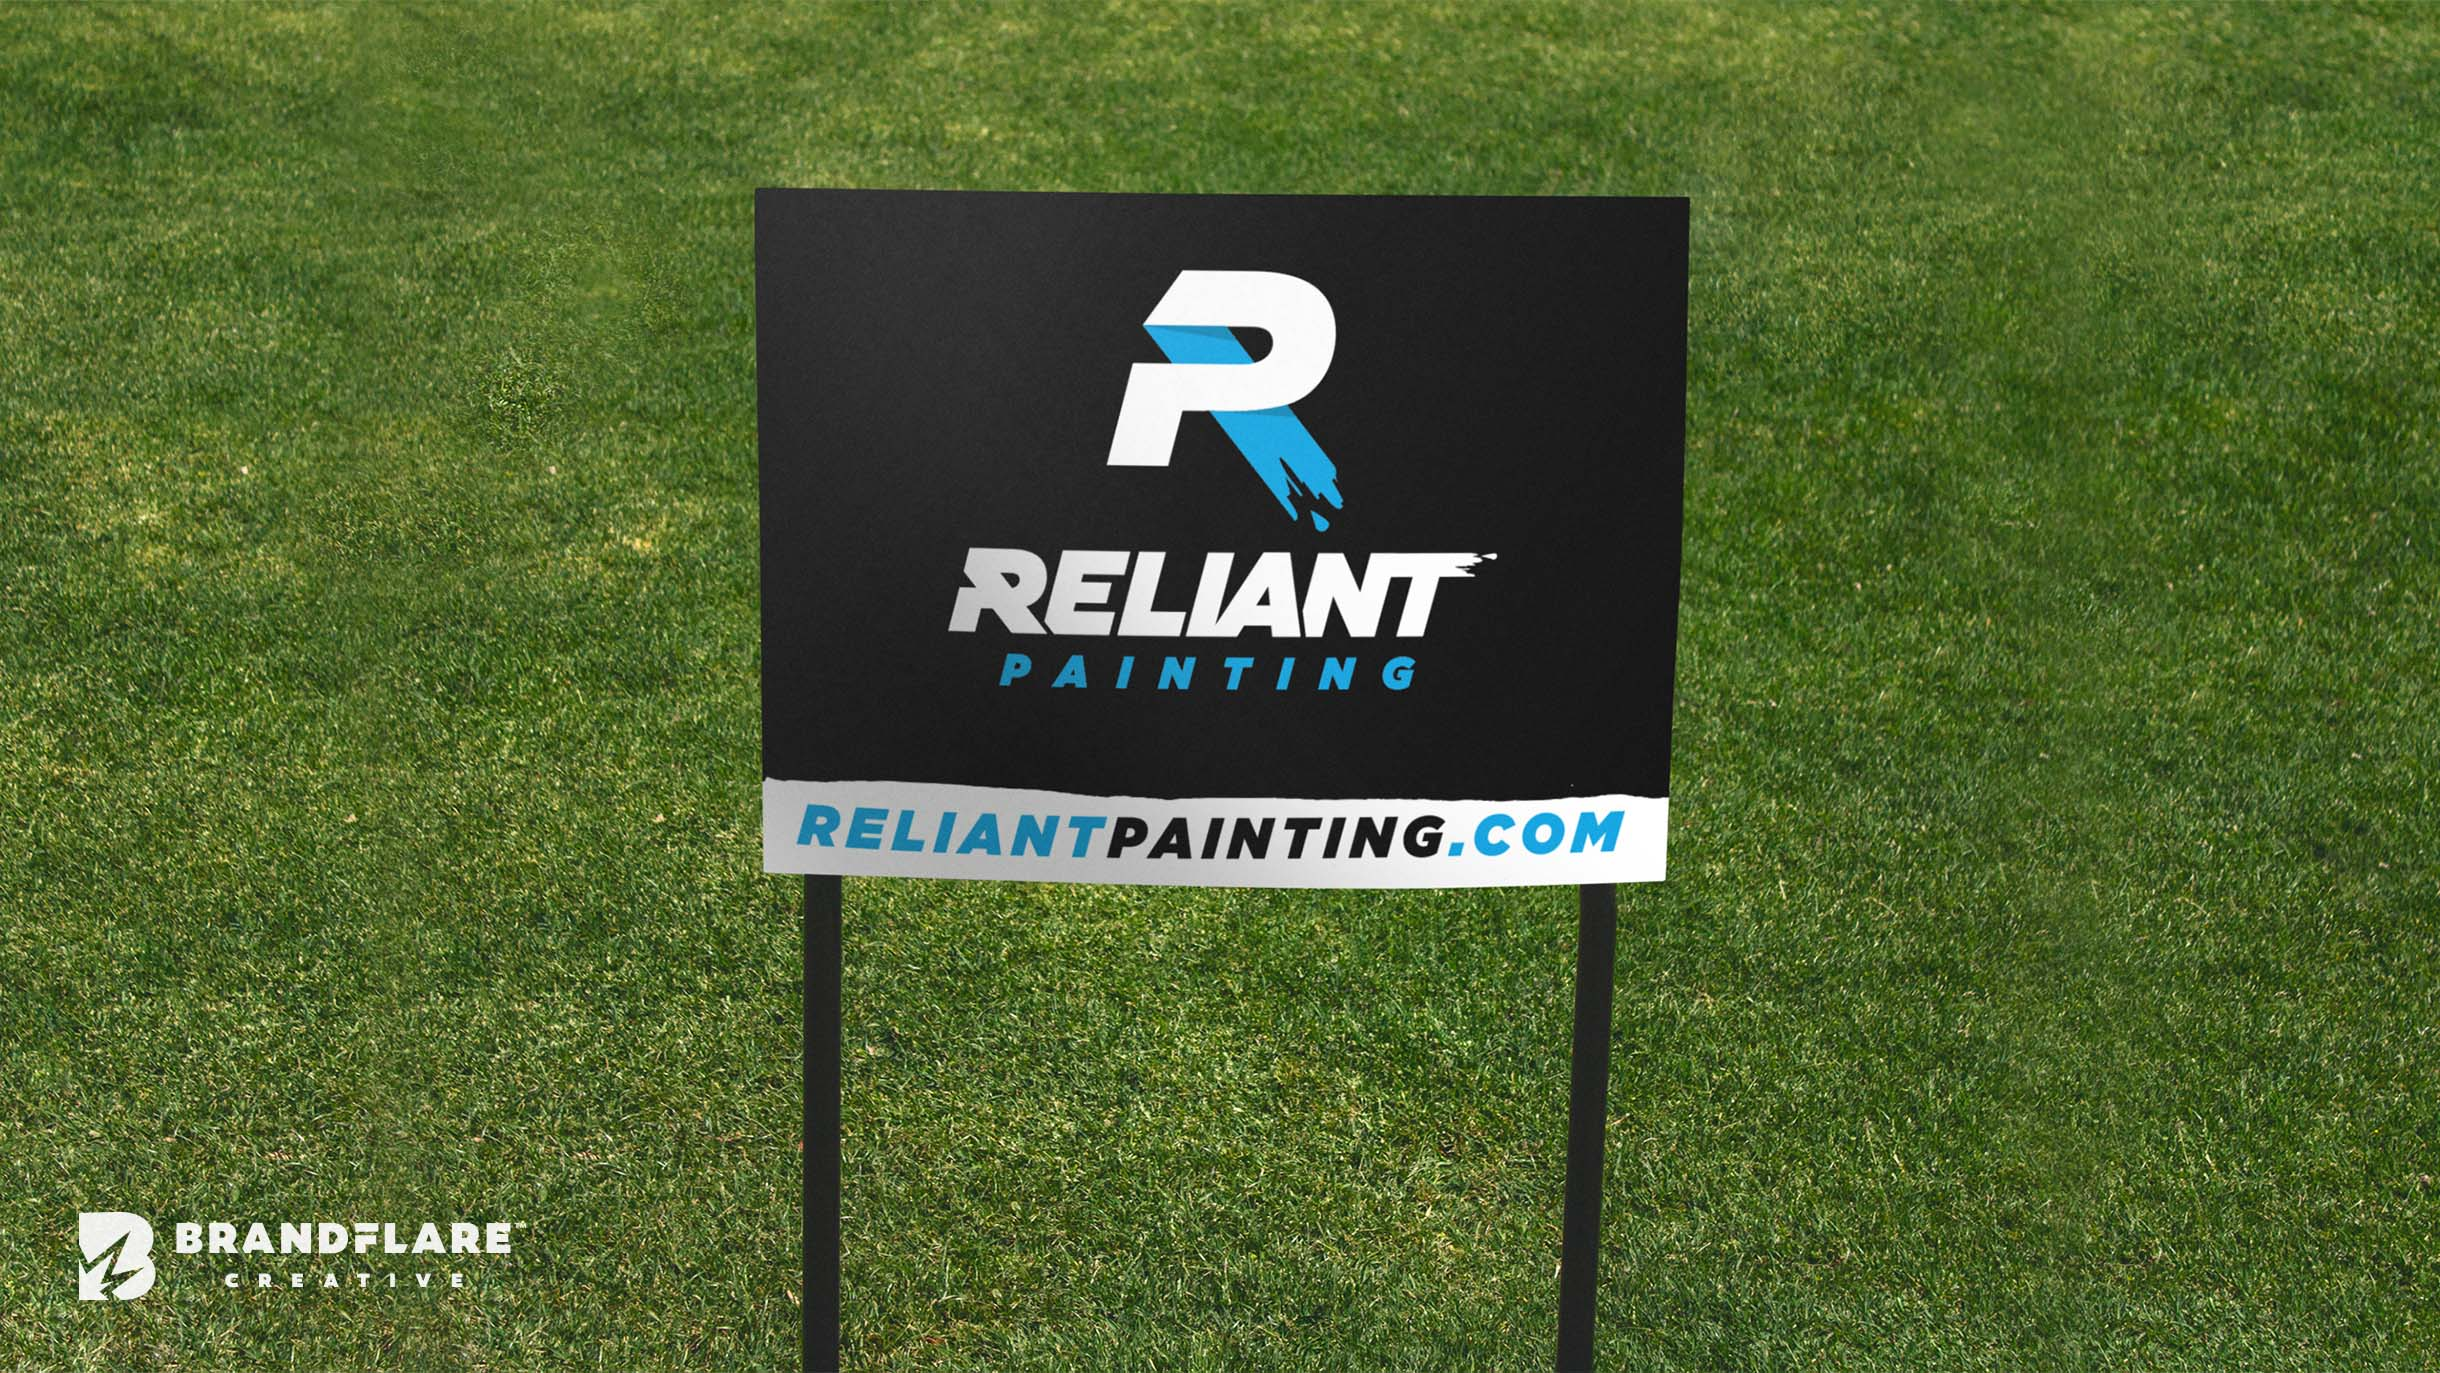 Reliant Painting Yard Sign Design